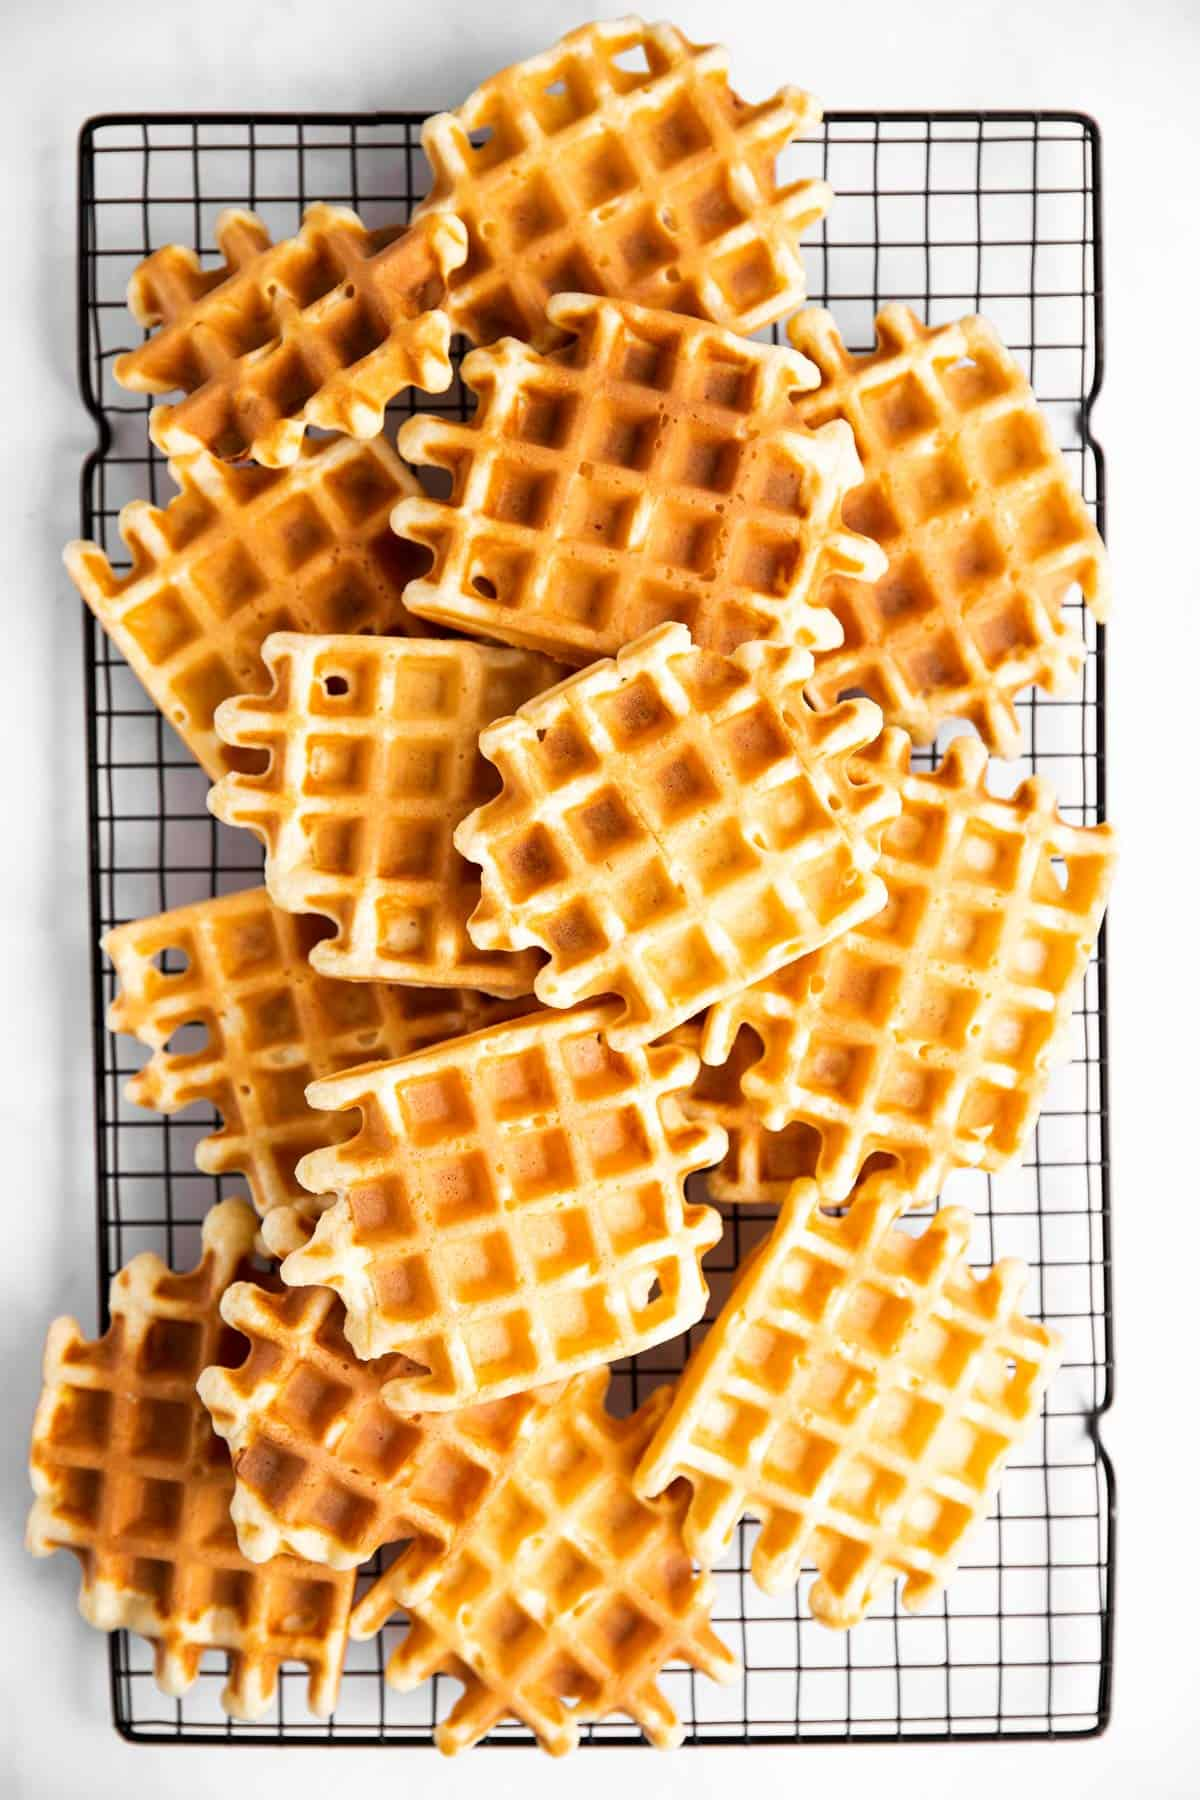 stacks of waffles on cooling rack